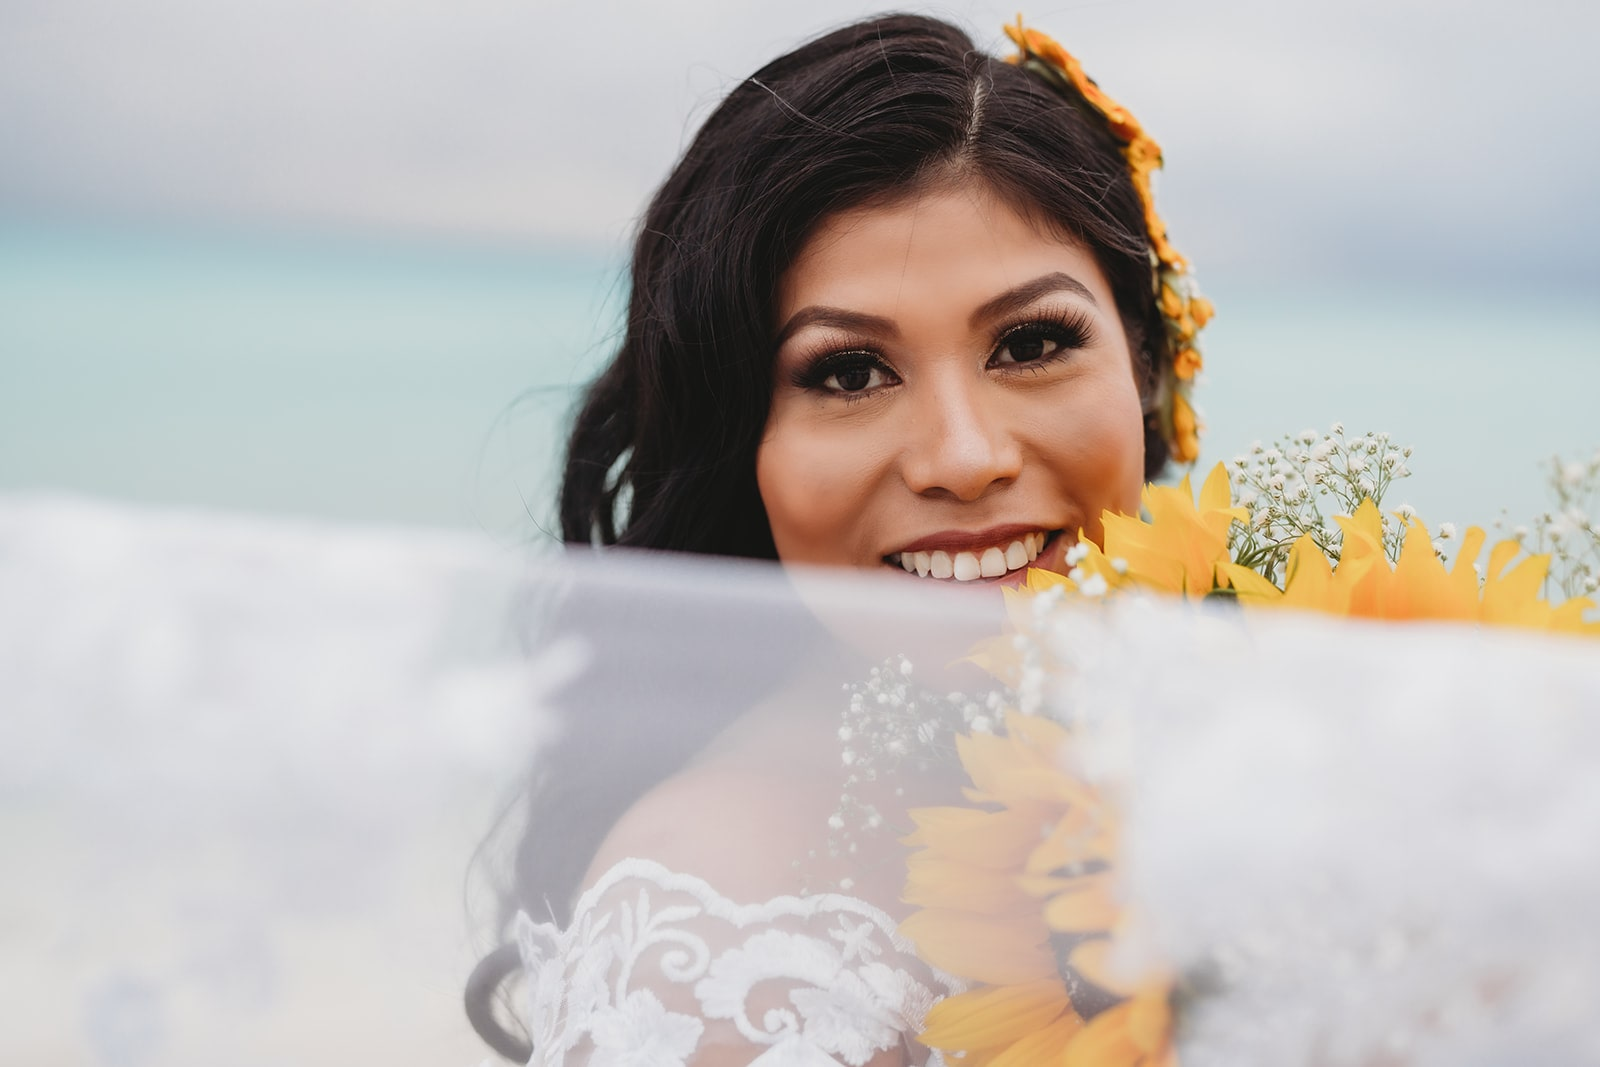 Sunflowers Pop Against Playacar Beach in Playa Del Carmen for this Sweet Covid-19 Couple, Photography by Dream Bella Photography for Caribbean Wedding Blog Adriana Weddings